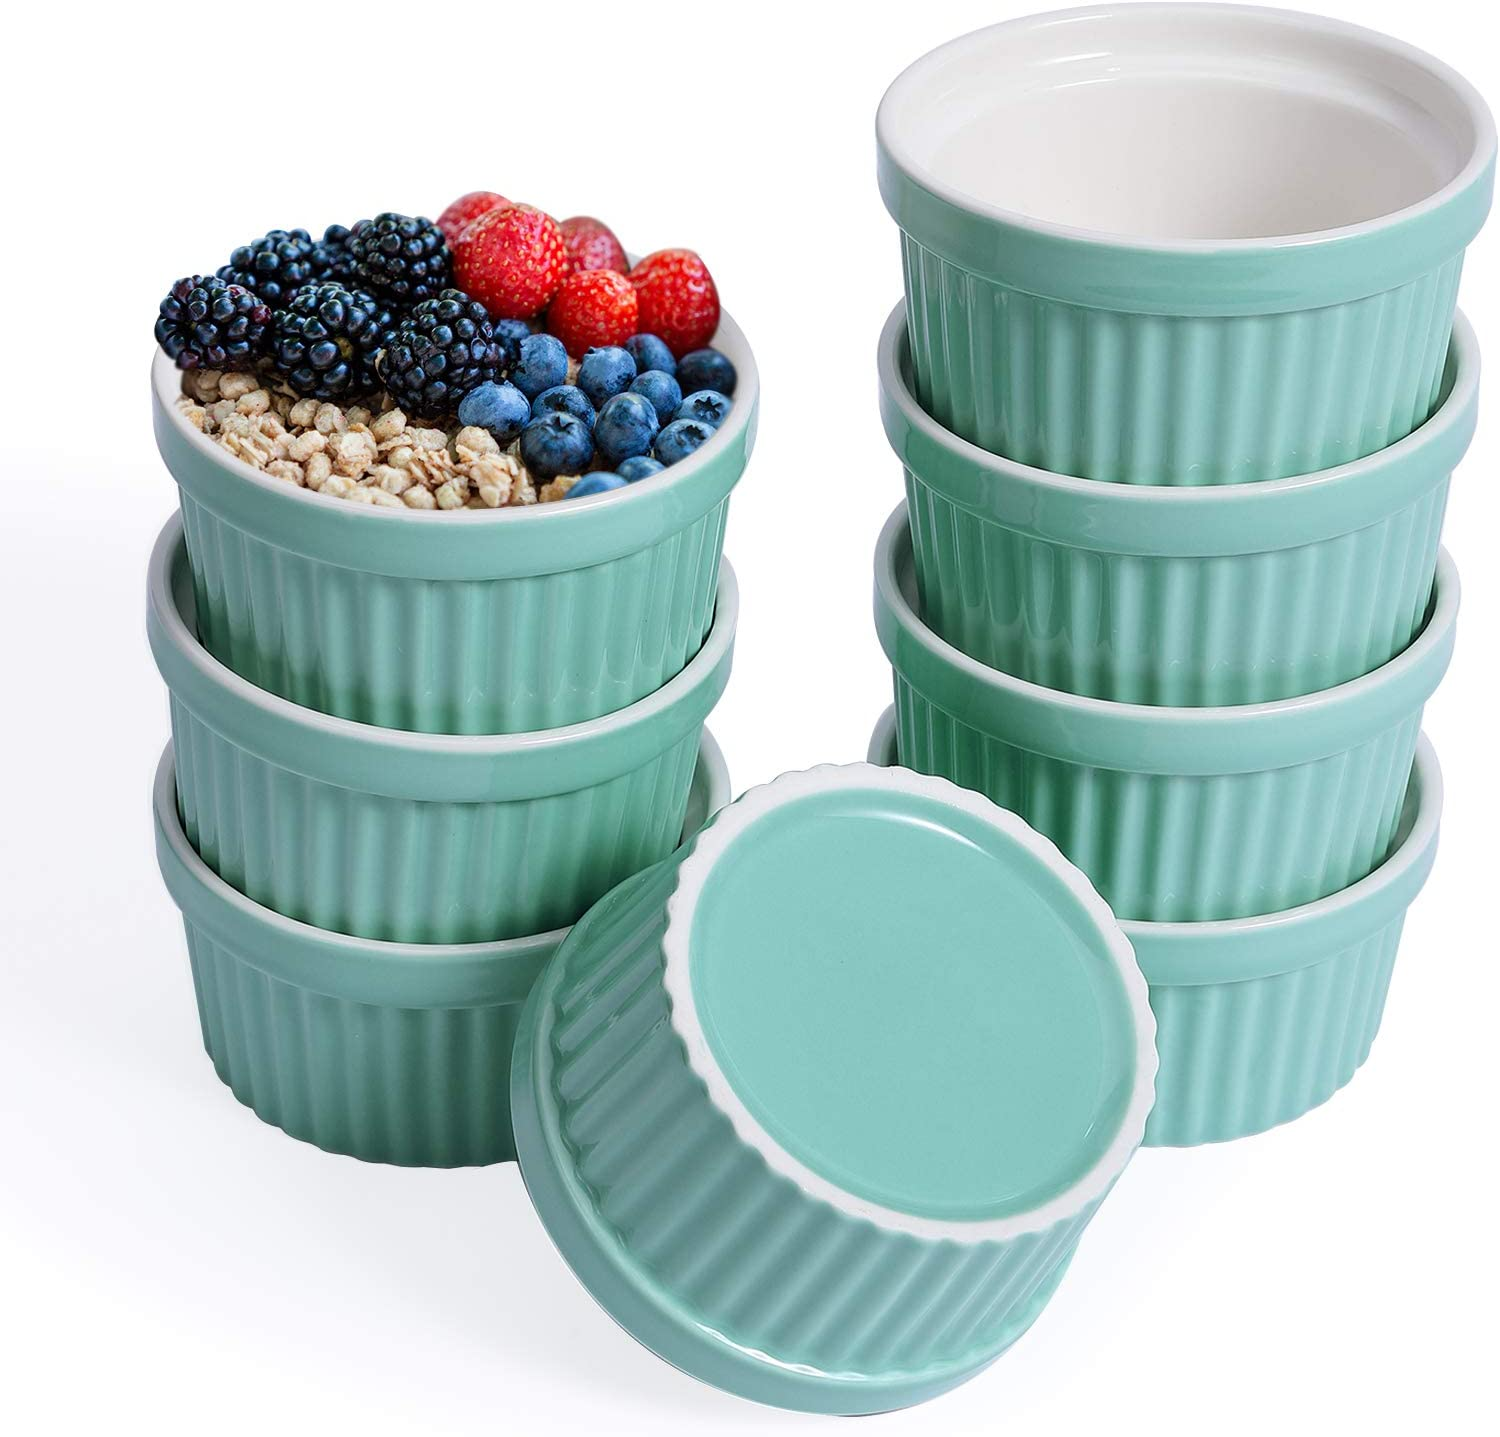 JOLLY CHEF 8 OZ Ramekins Bowls, Set of 8 Souffle Dishes Ramekins for Creme Brulee Dishes,Pudding, Custard Cups, Classic Porcelain Ramekins for Baking, Oven Safe, Blue.Ideal for Mother's Day Gifts